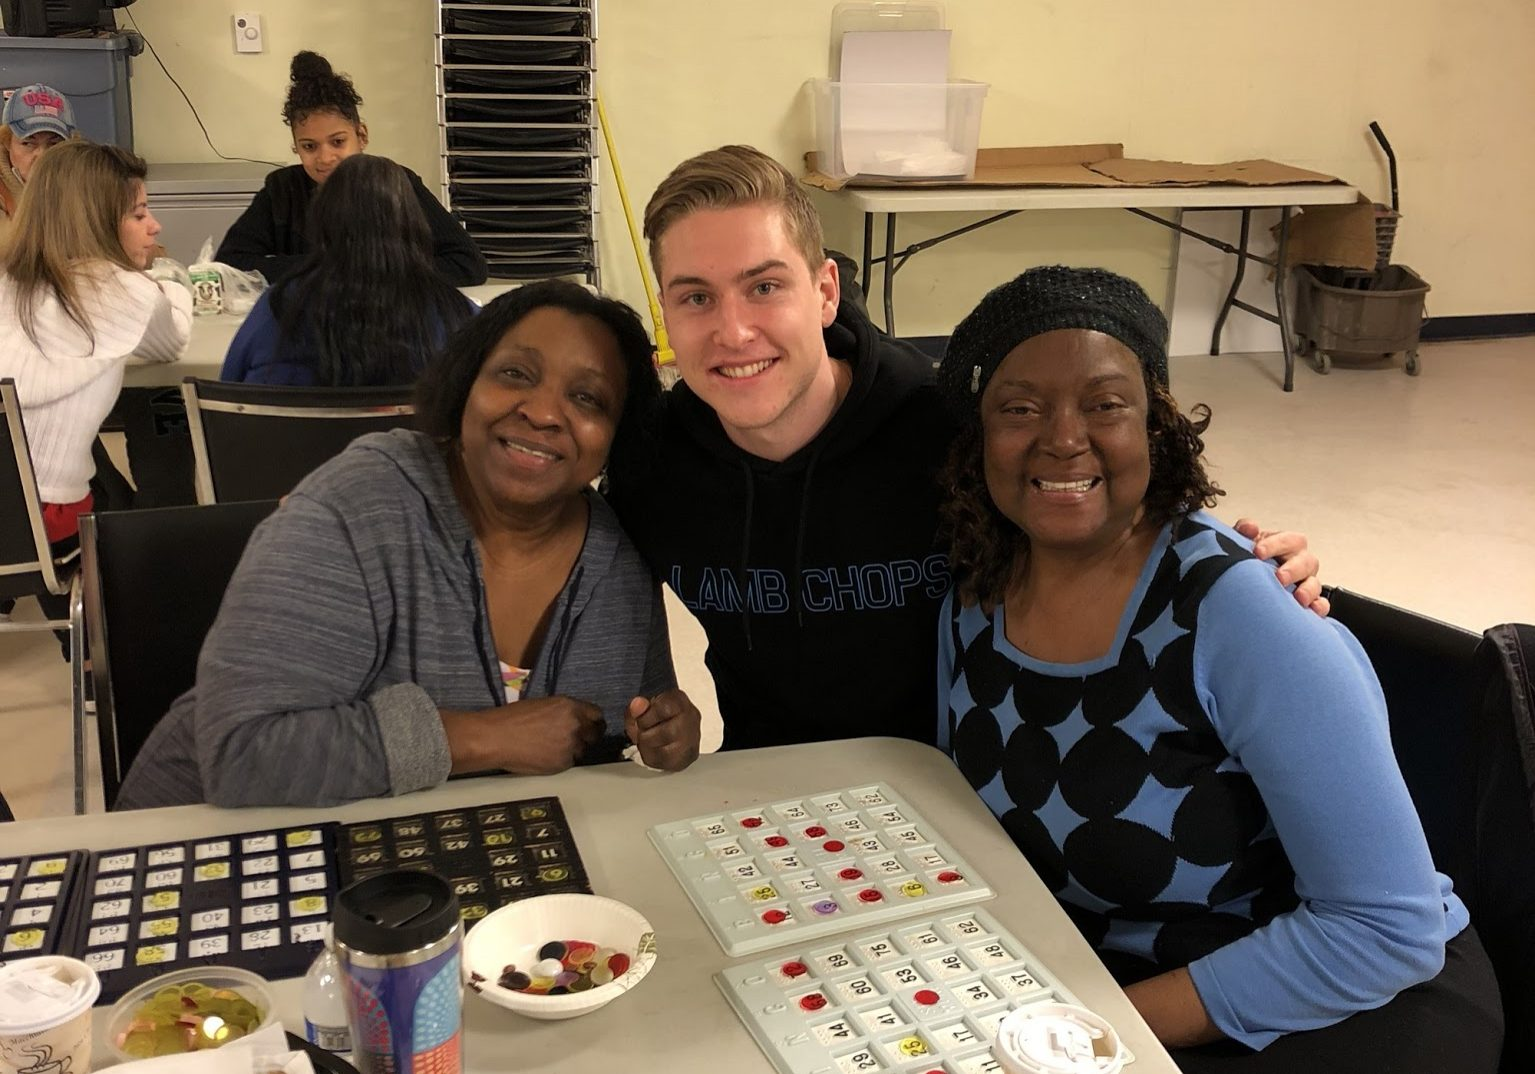 Michelle and Roz enjoying game night with a volunteer: three smiling faces at bingo!